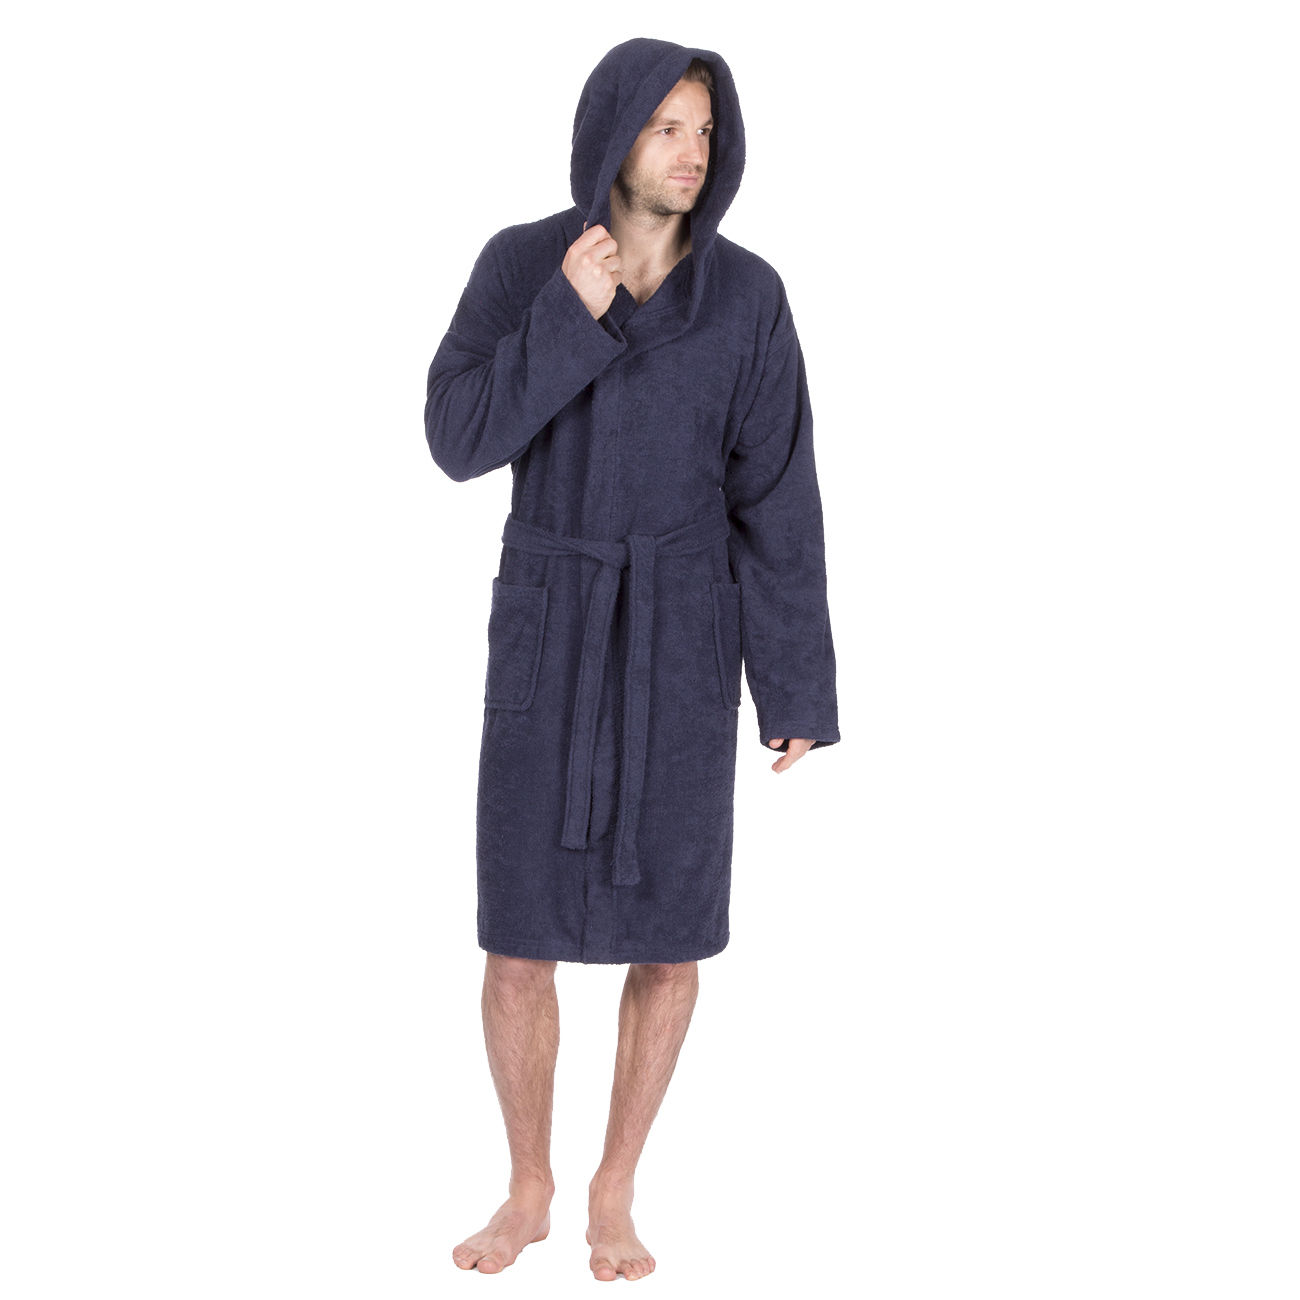 Terry Cloth Robe With Hood Mens